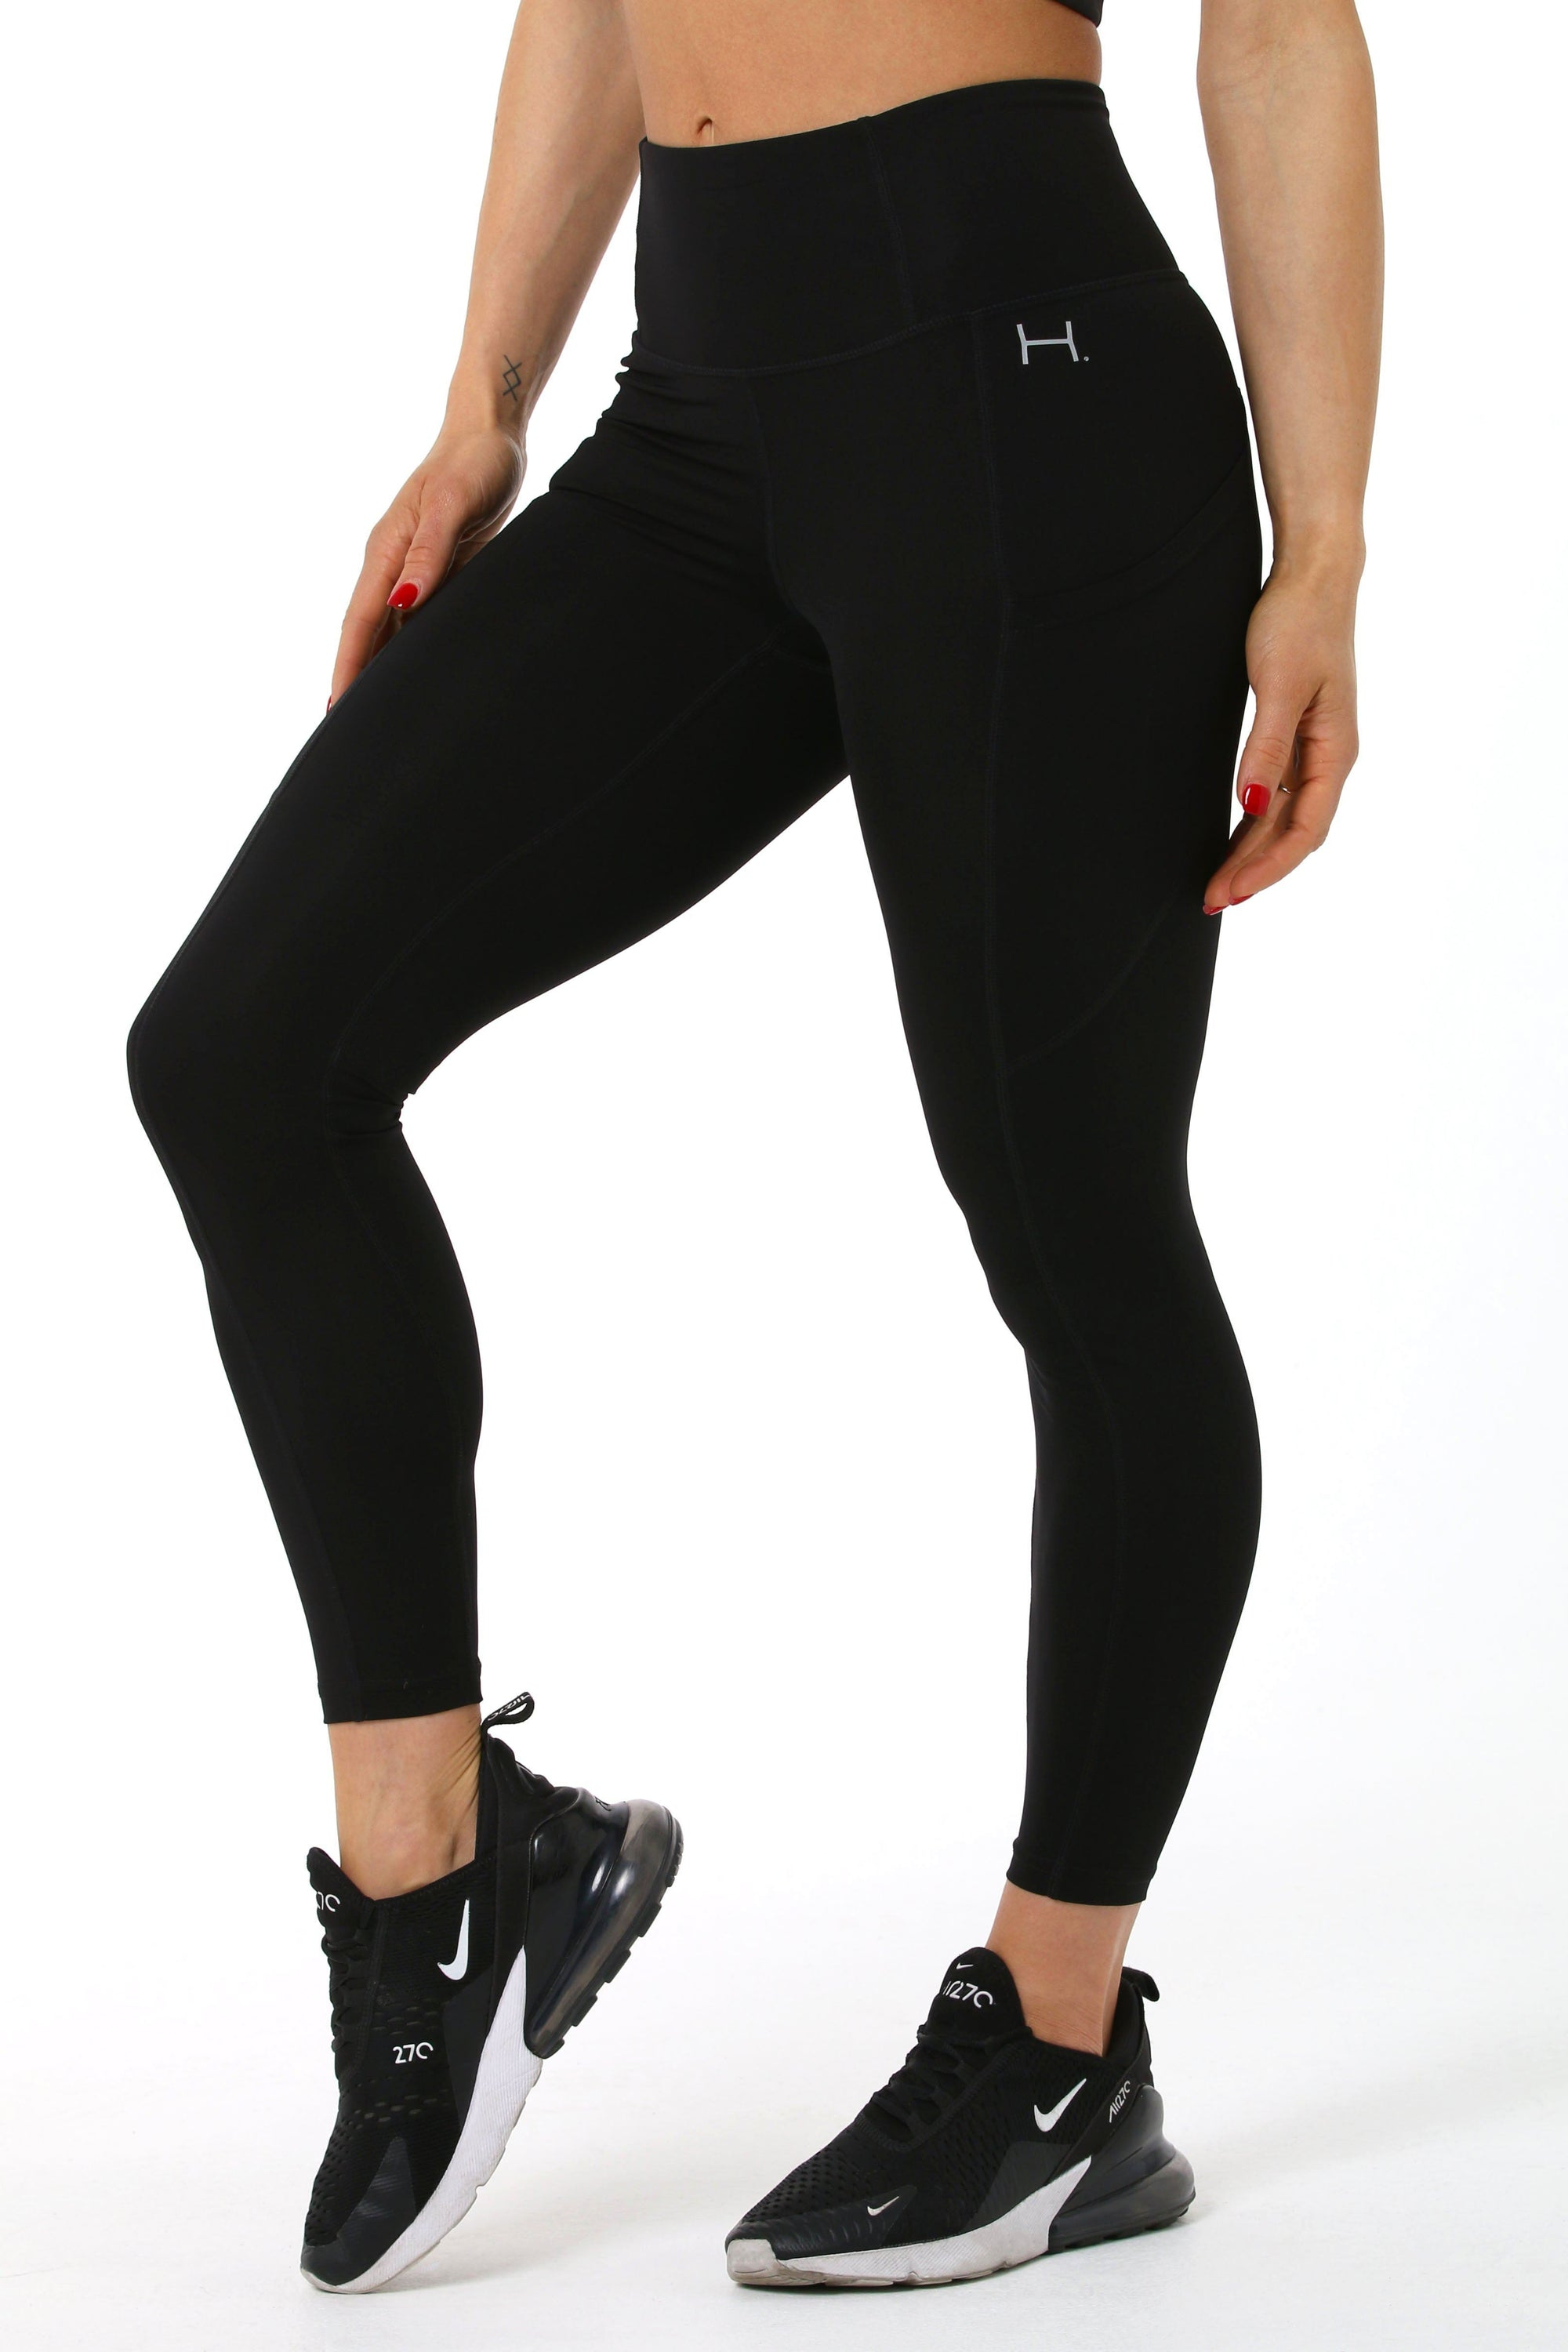 Humble Capsule Leggings - Black